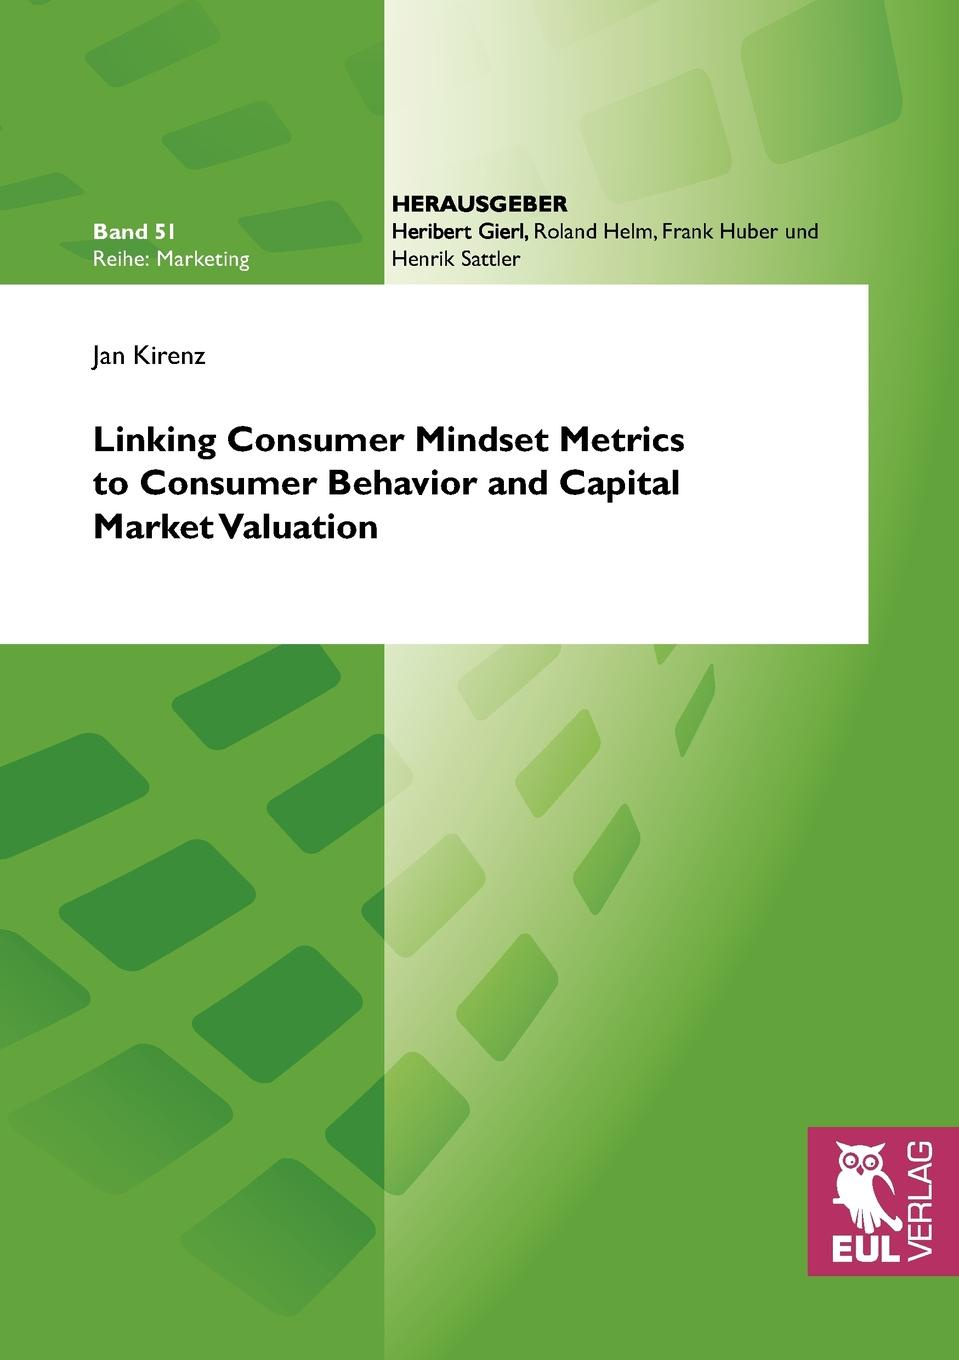 Jan Kirenz Linking Consumer Mindset Metrics to Consumer Behavior and Capital Market Valuation